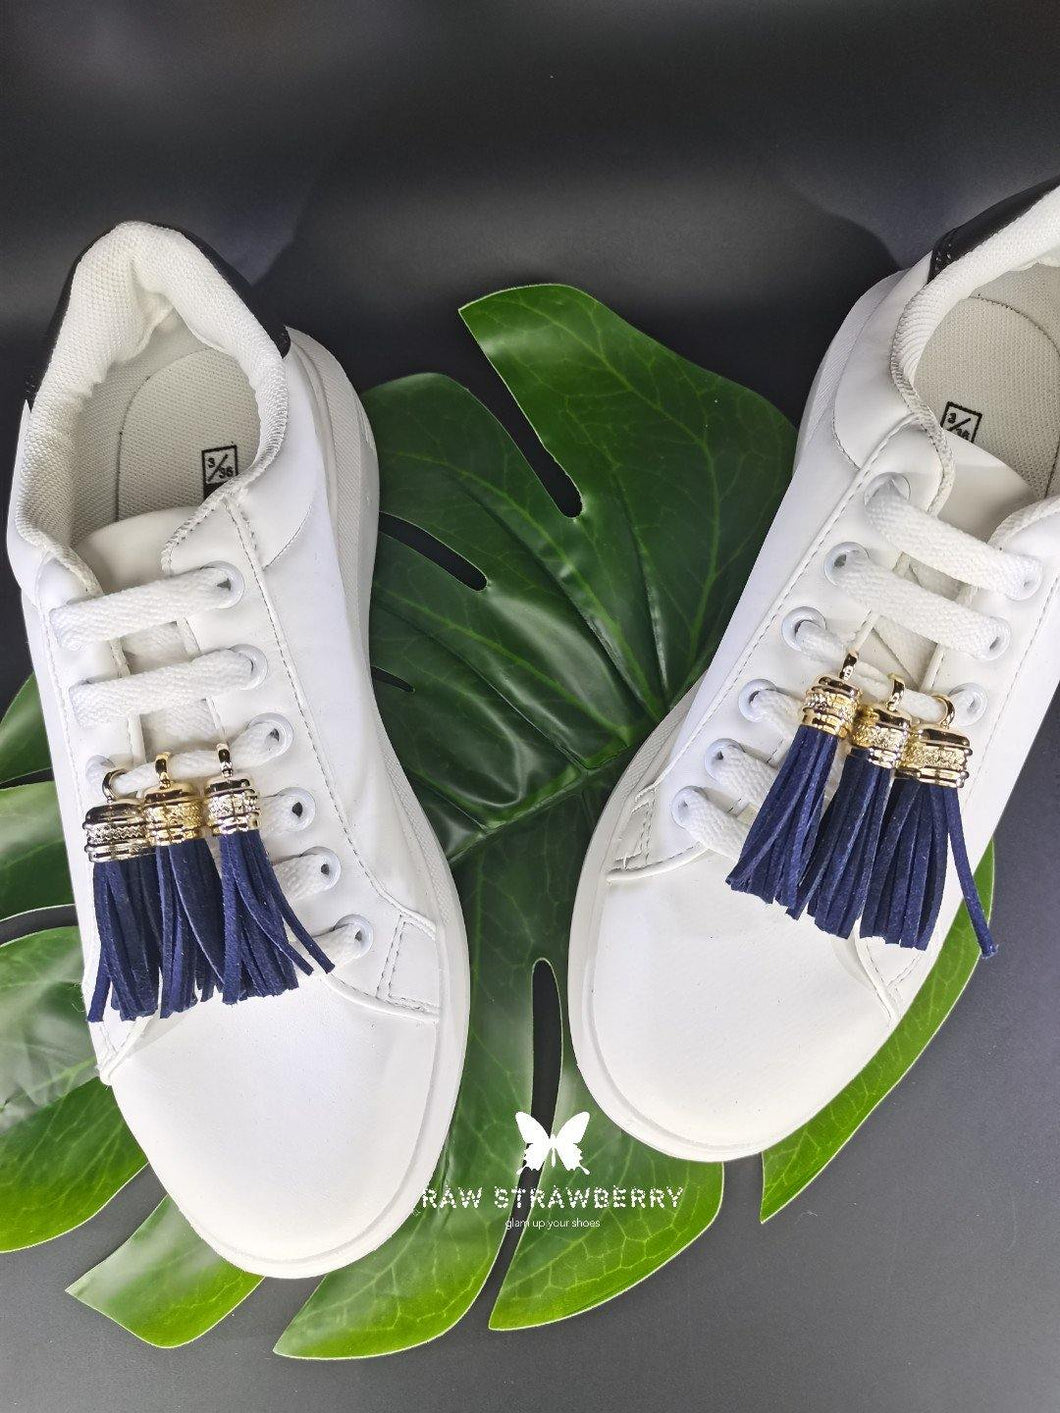 navy sneaker tassels (6 pieces) - Raw Strawberry